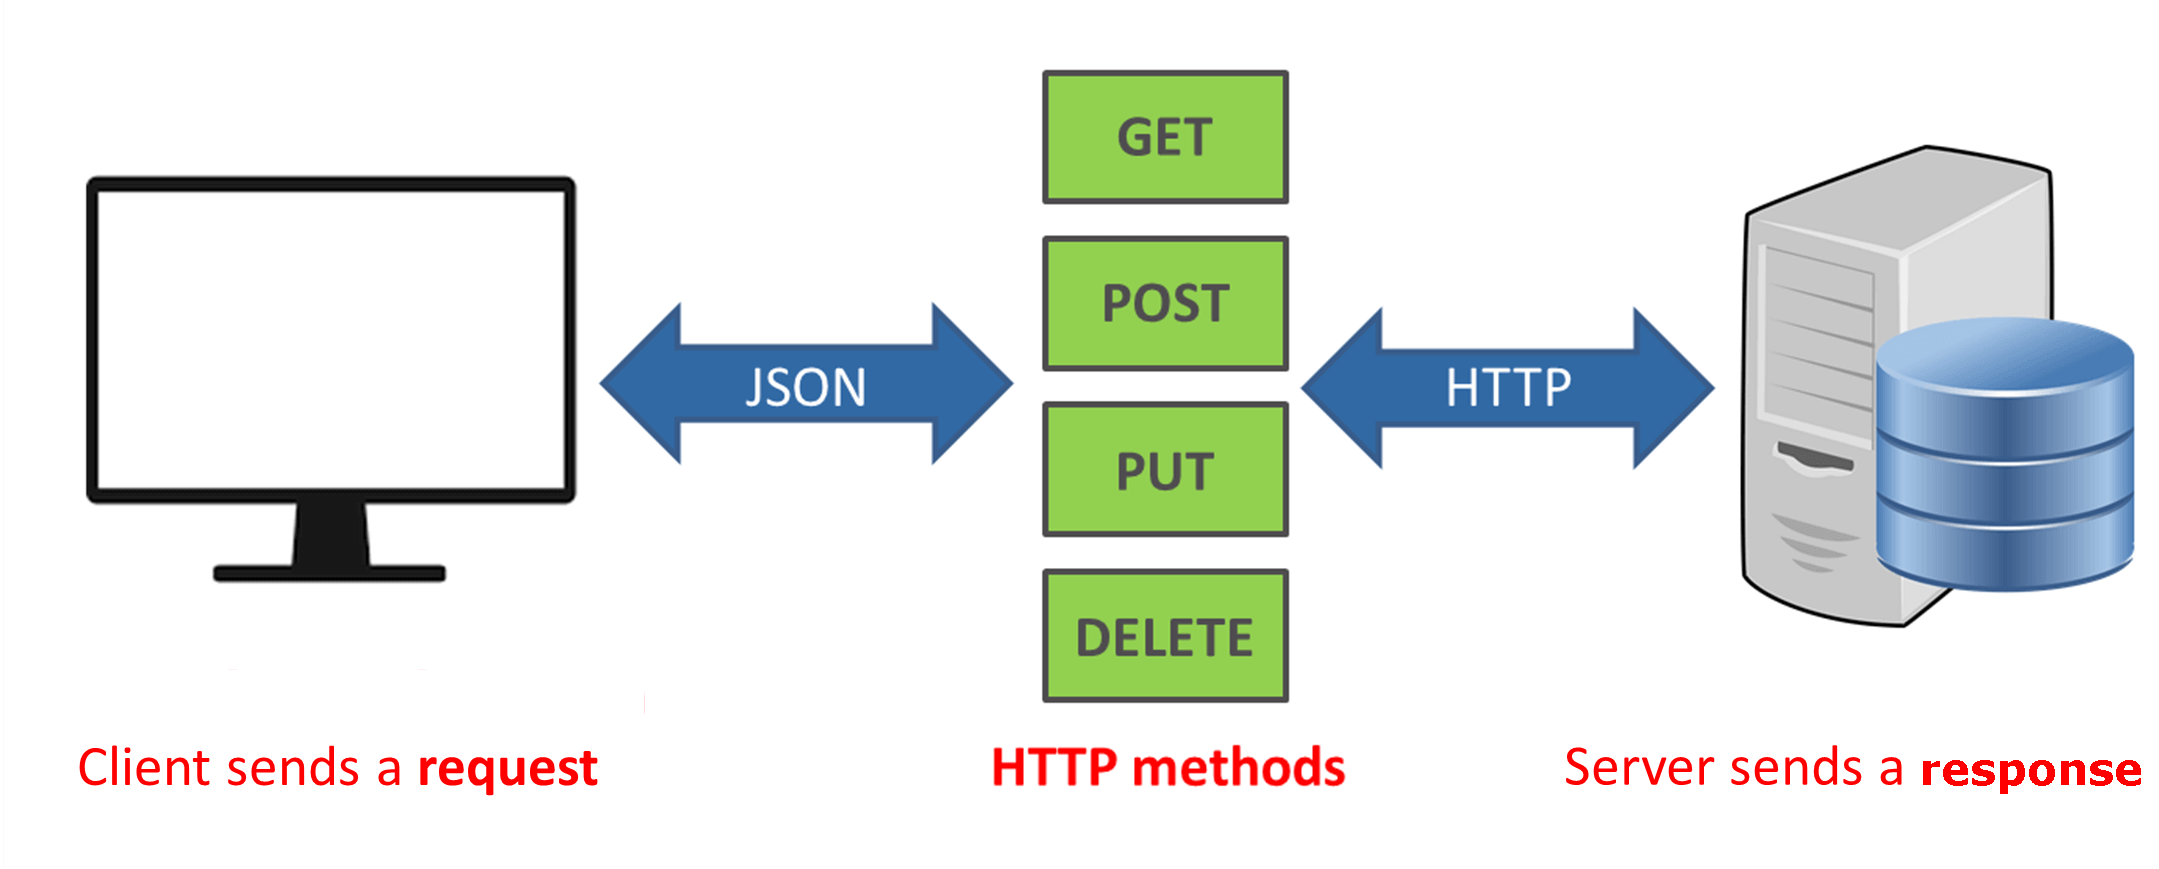 Source: https://phpenthusiast.com/blog/what-is-rest-api